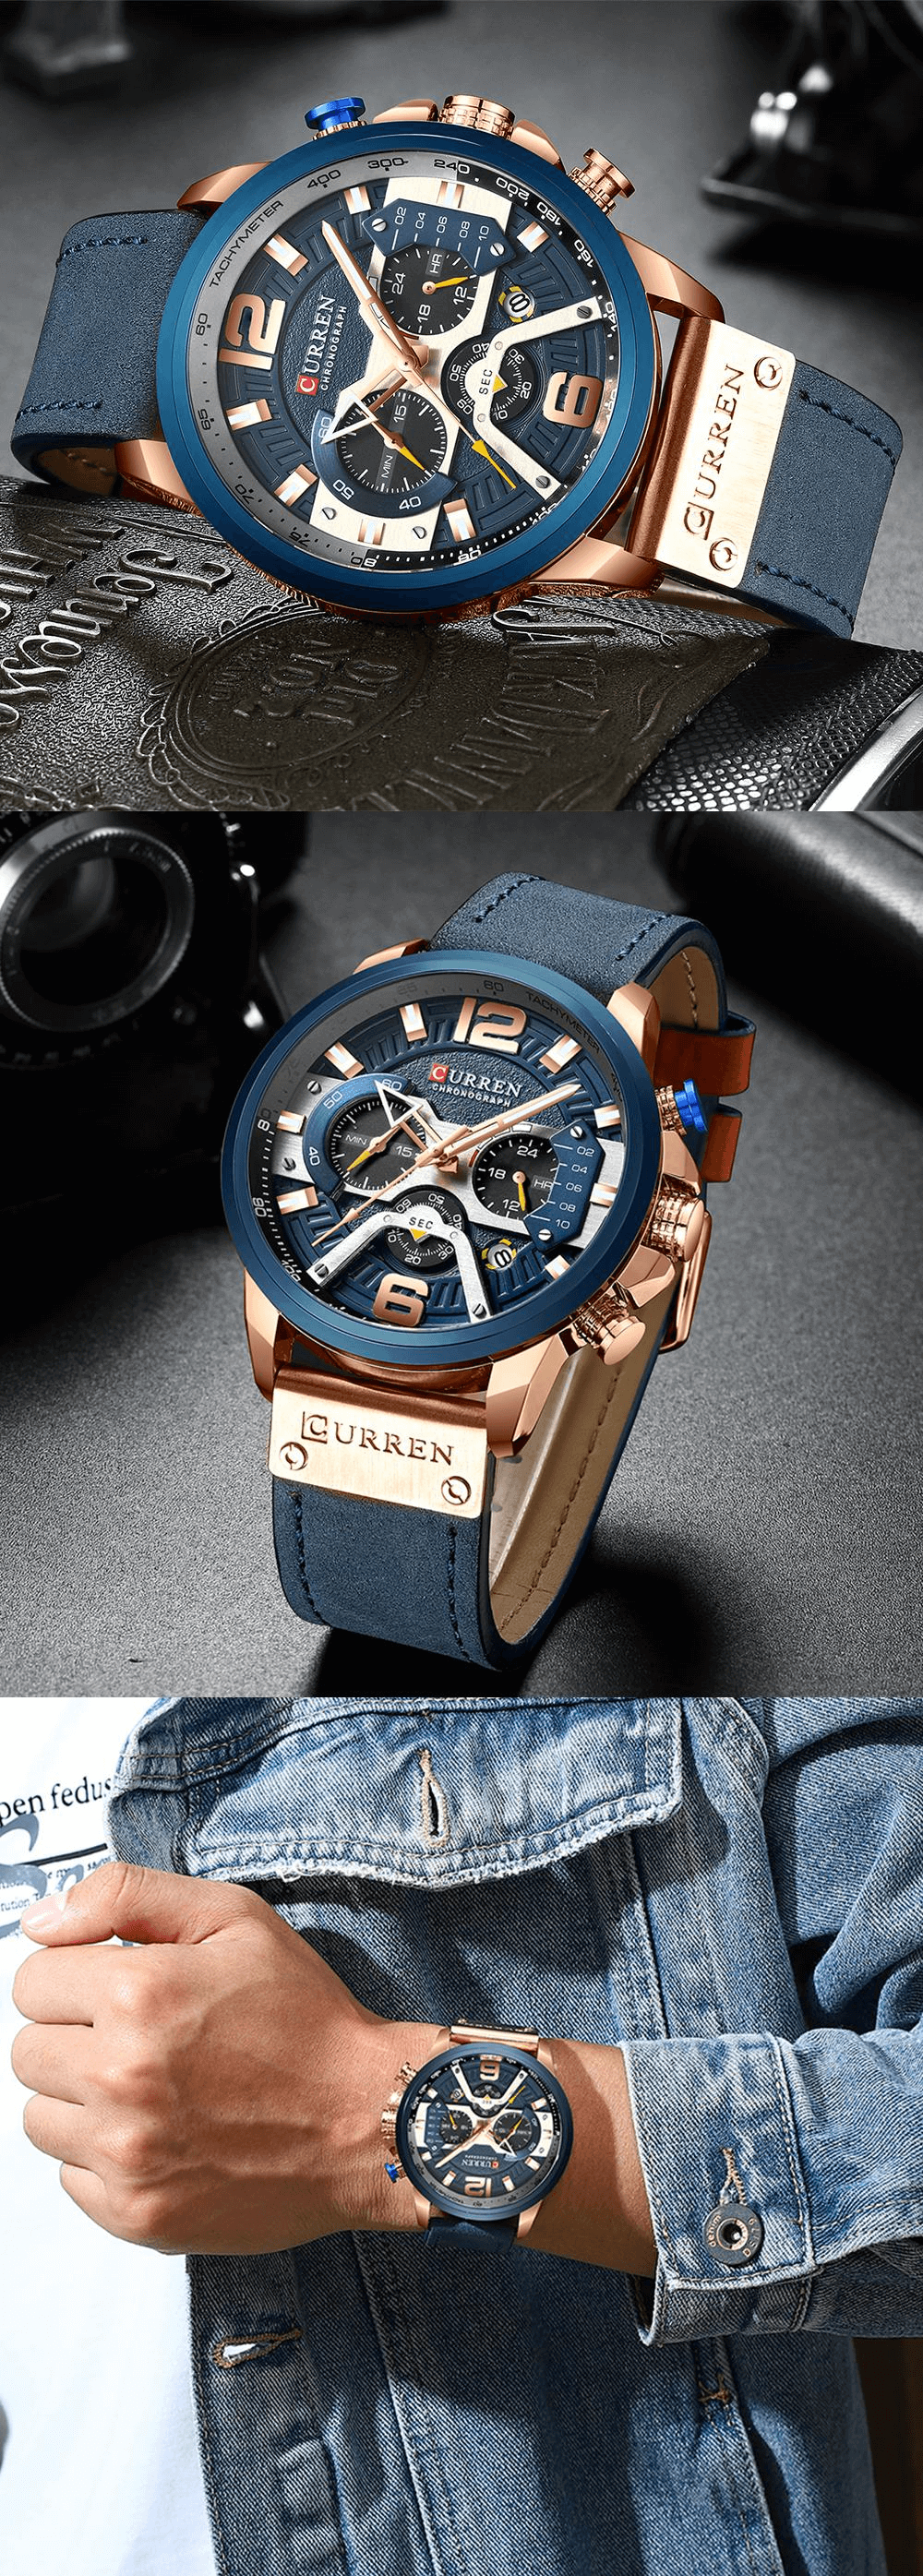 Curren watch rose gold blue